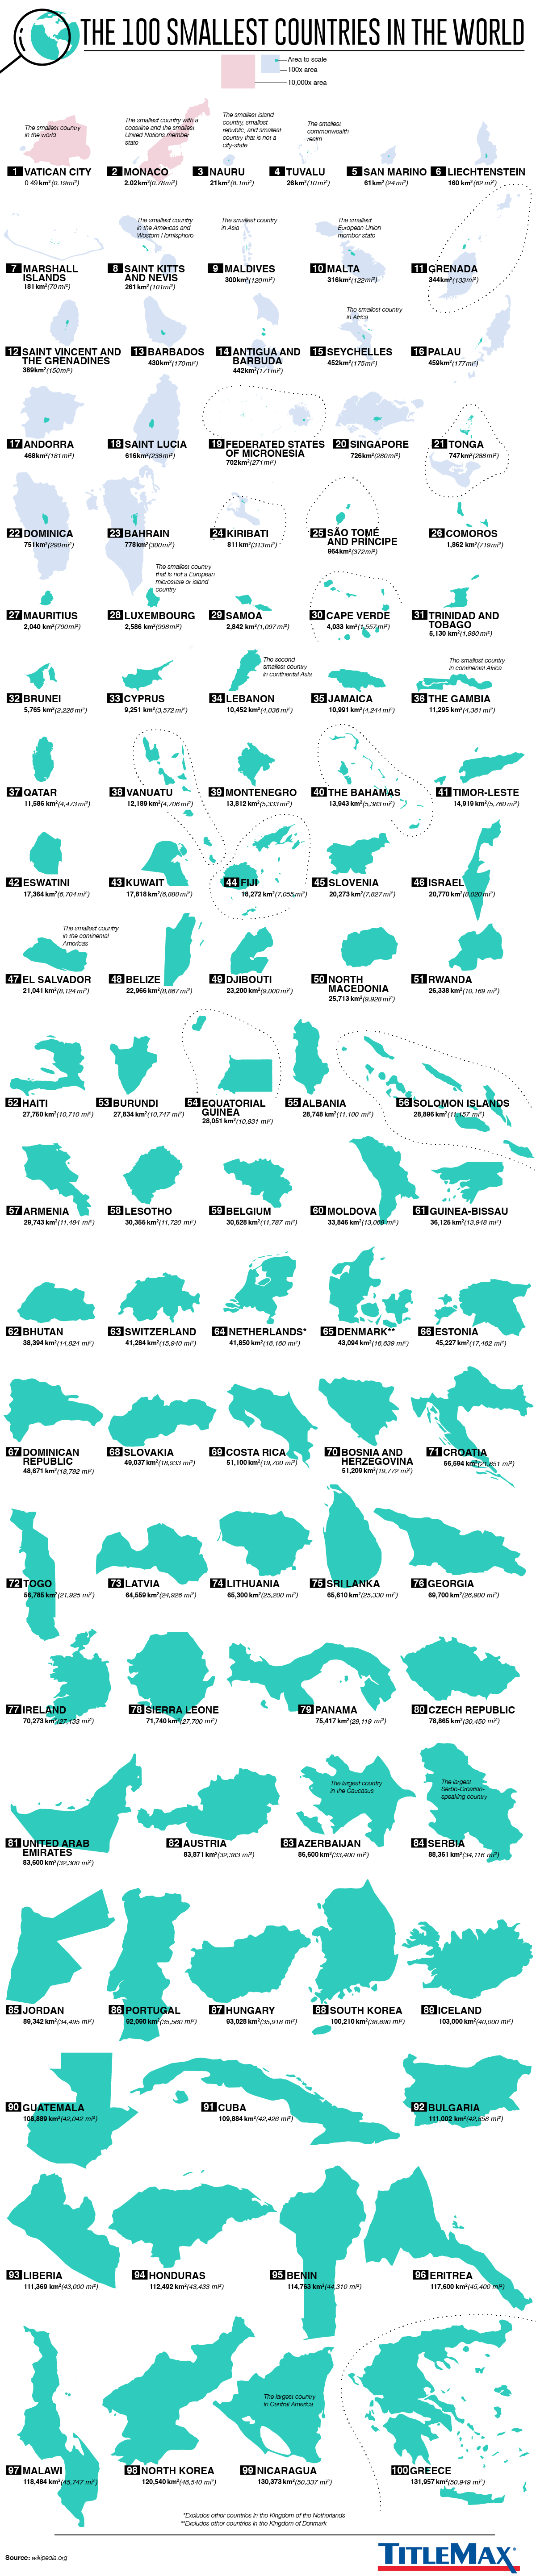 Map of the 100 Smallest Countries